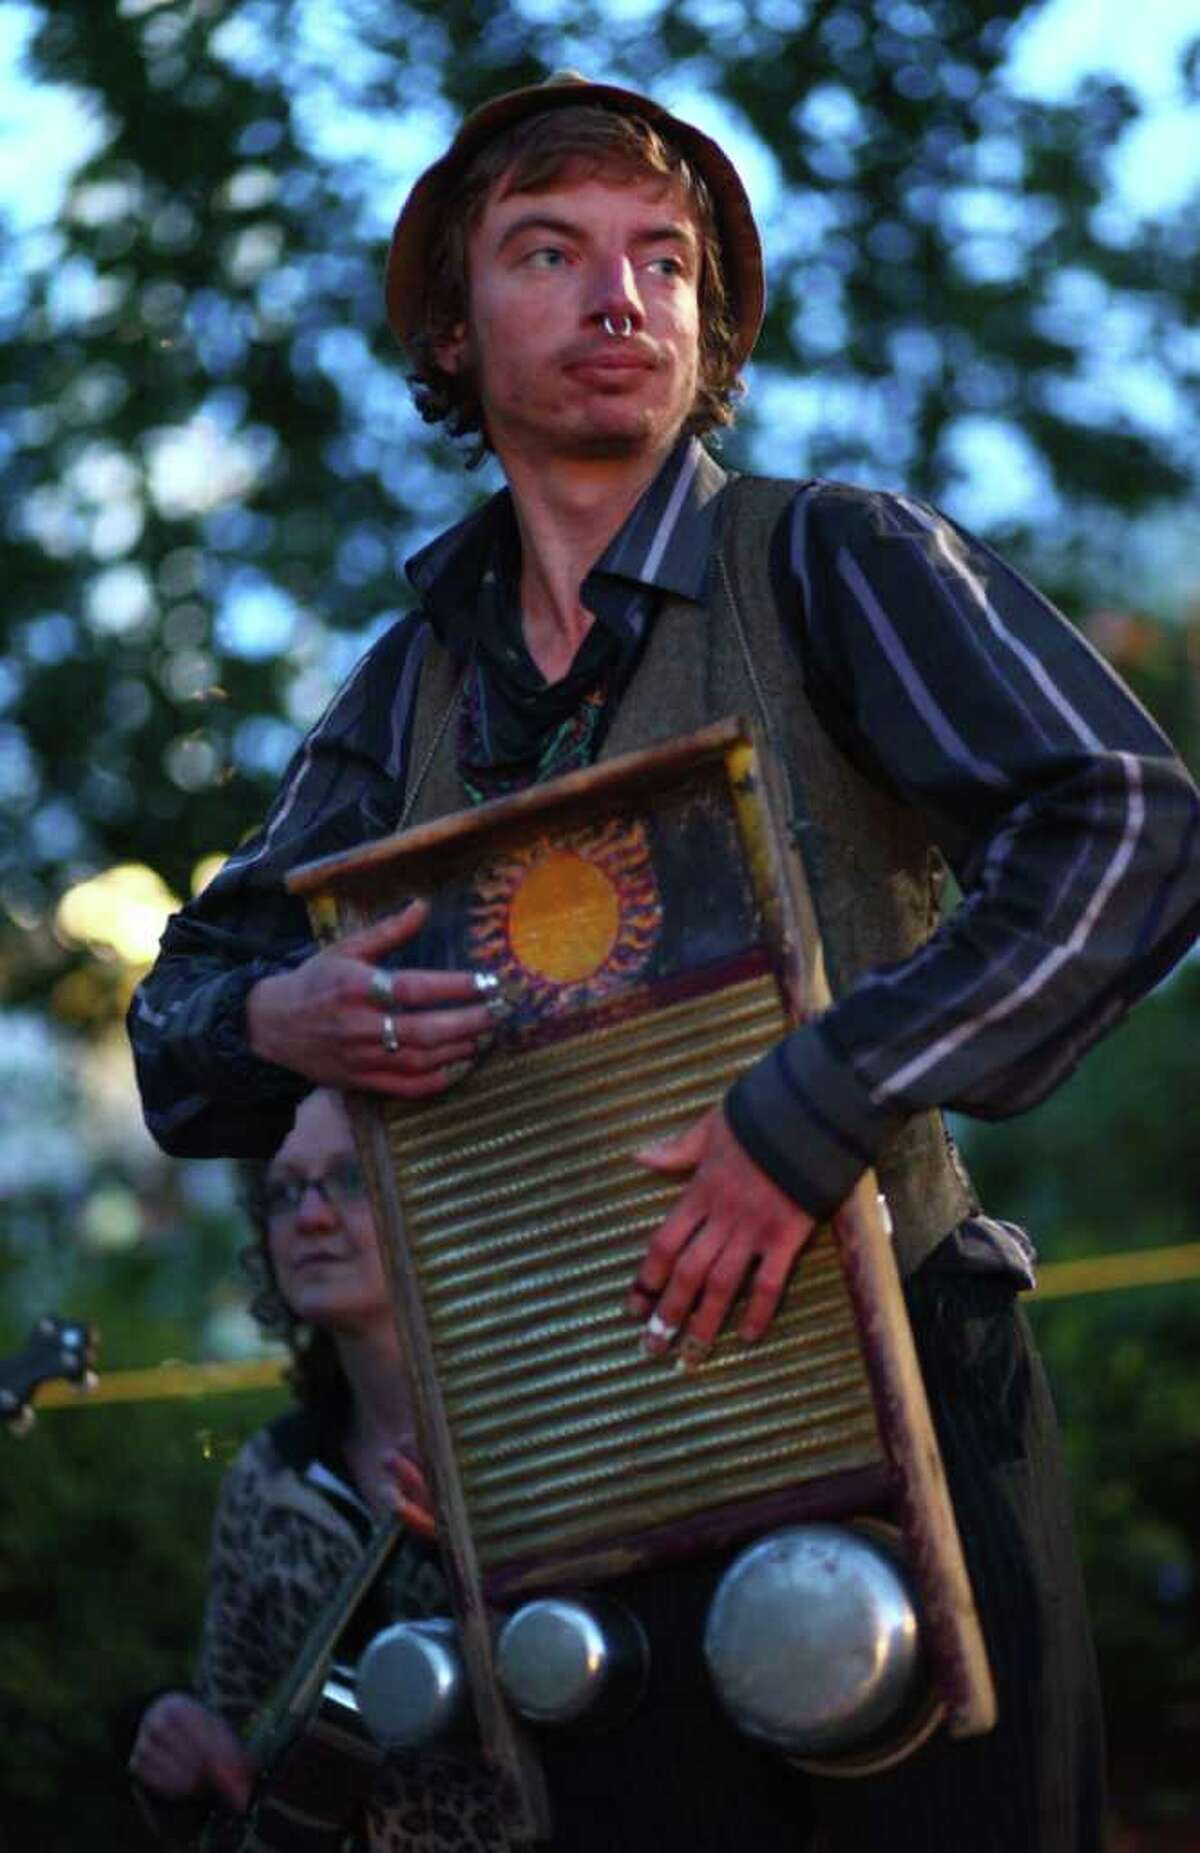 Po, of the band Same Old Use To Be's, plays a washboard and cans during the 40th annual Northwest Folklife Festival. Members of his band have been regular buskers at the festival for many years.